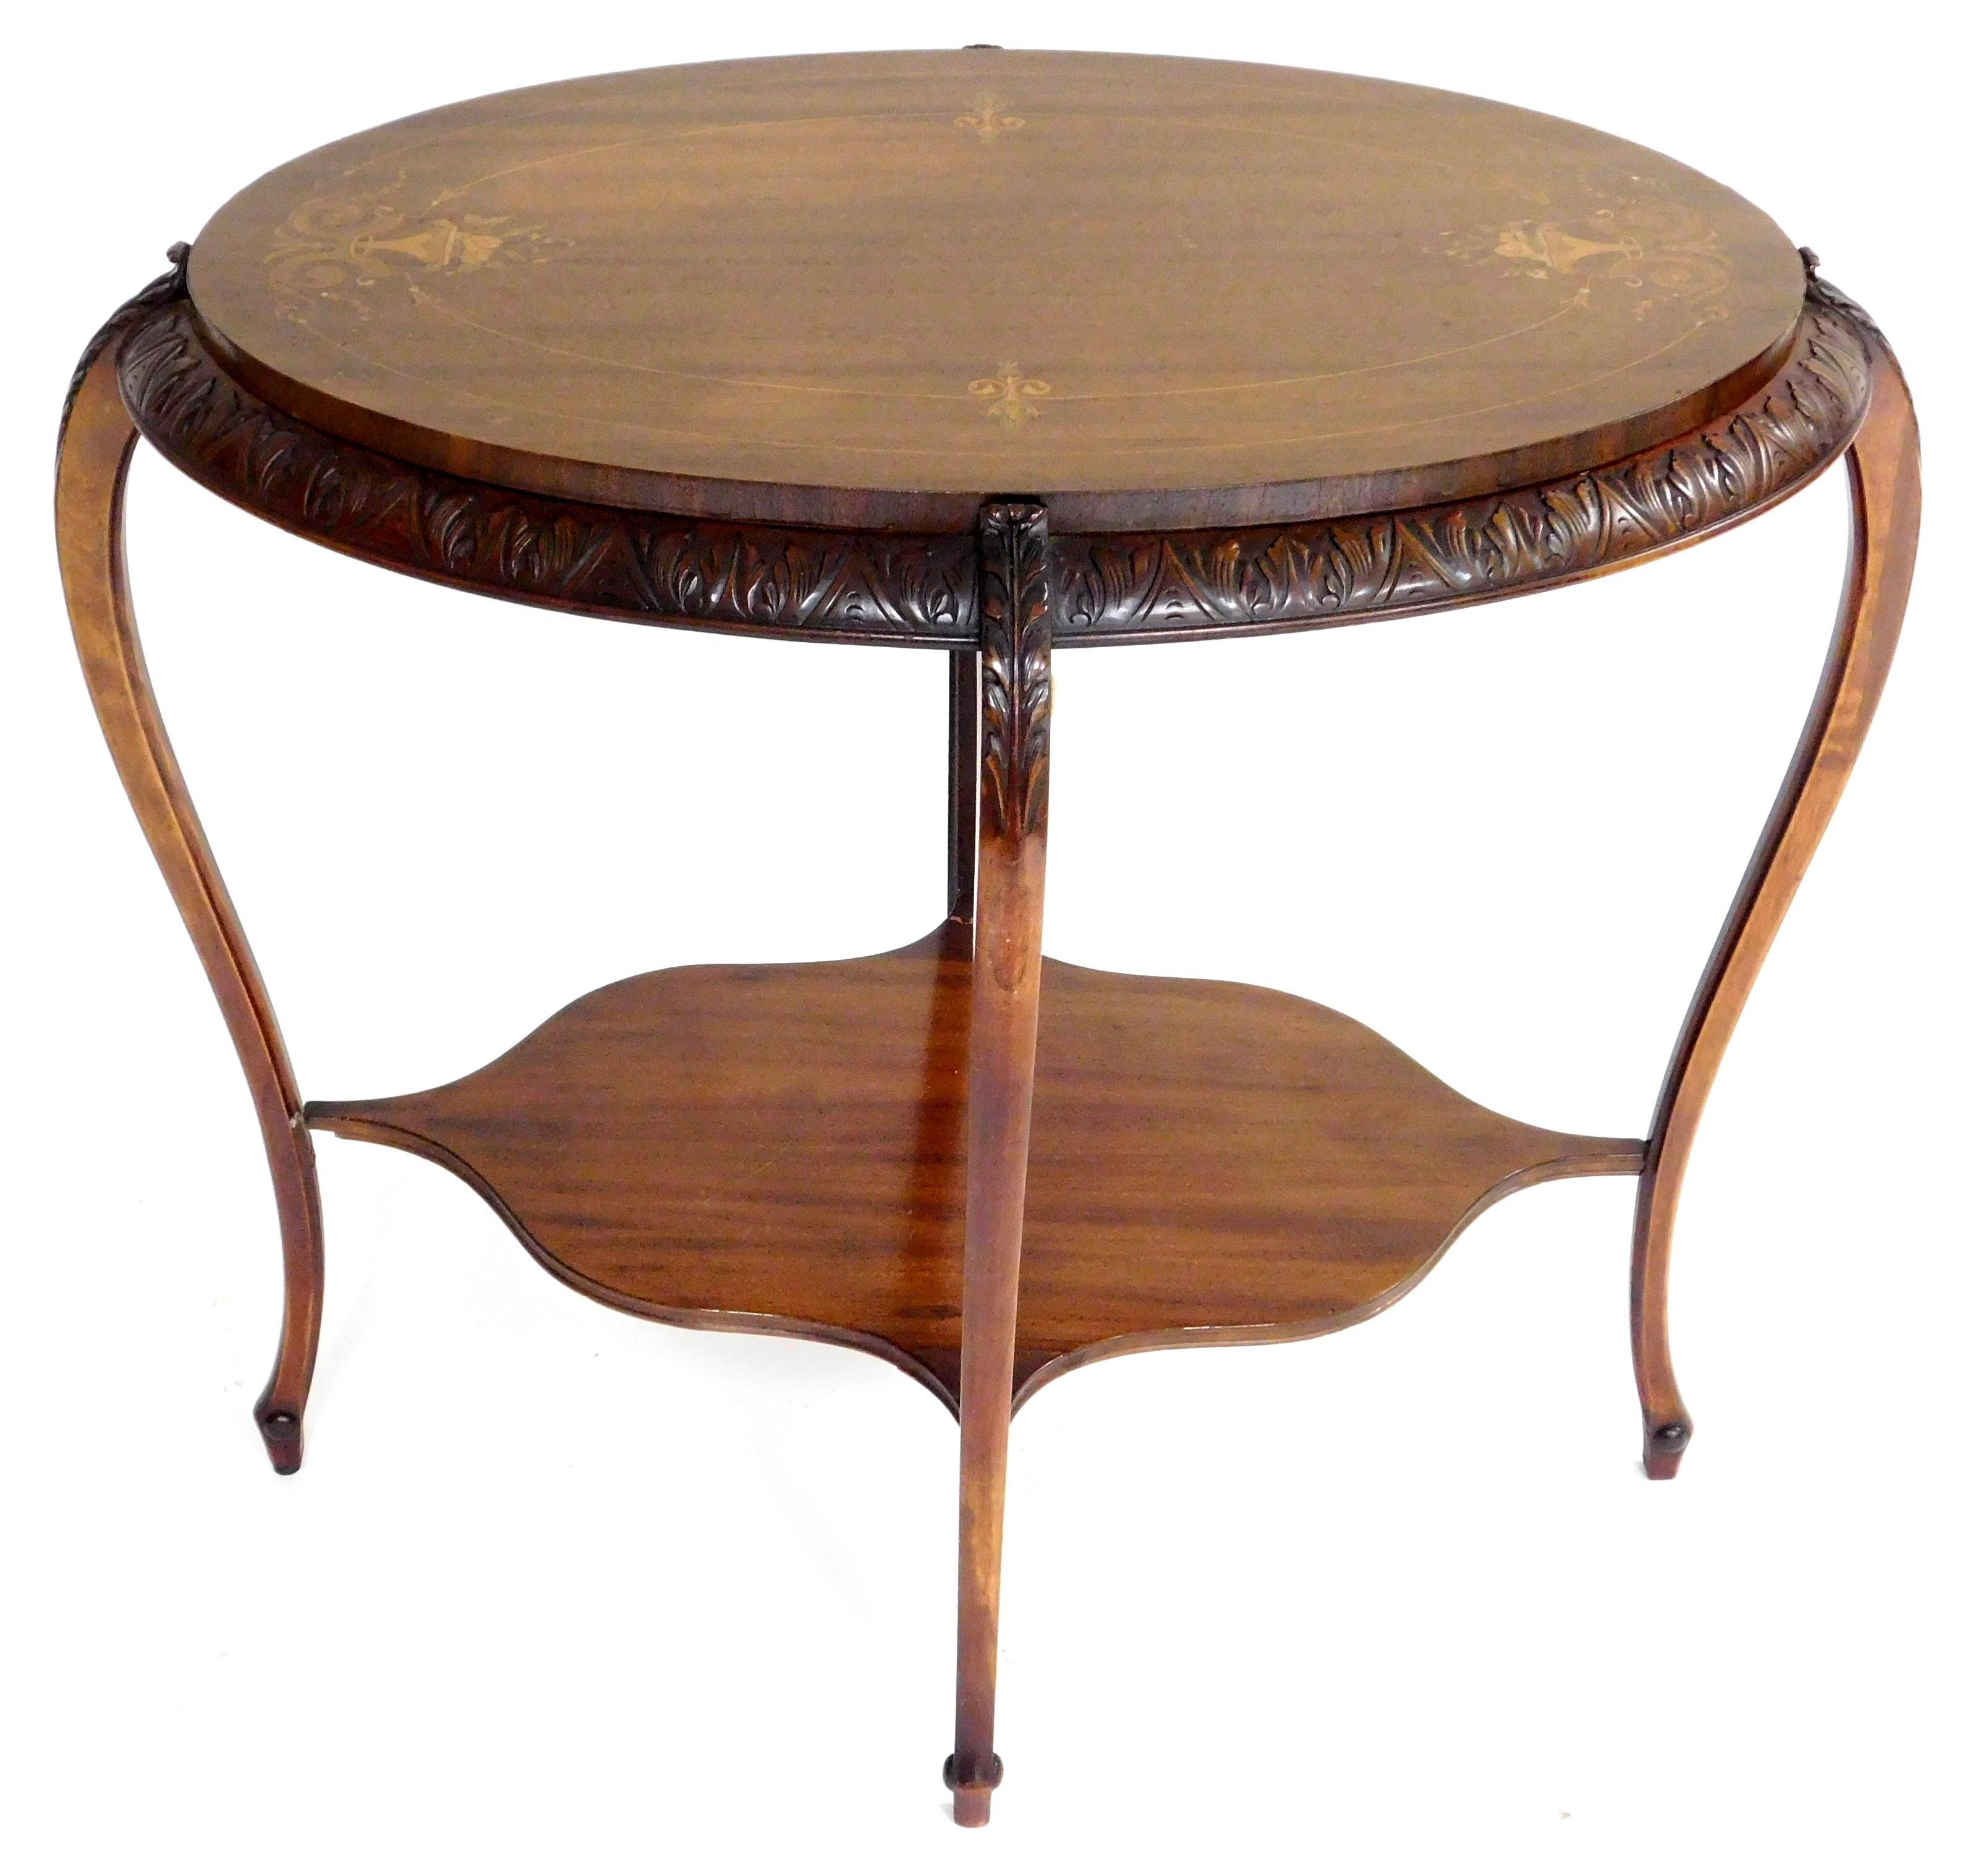 Oval table with marquetry and mother of pearl inlaid accents, early 20th C., some floral basket veneers with coloring, carved acanth...